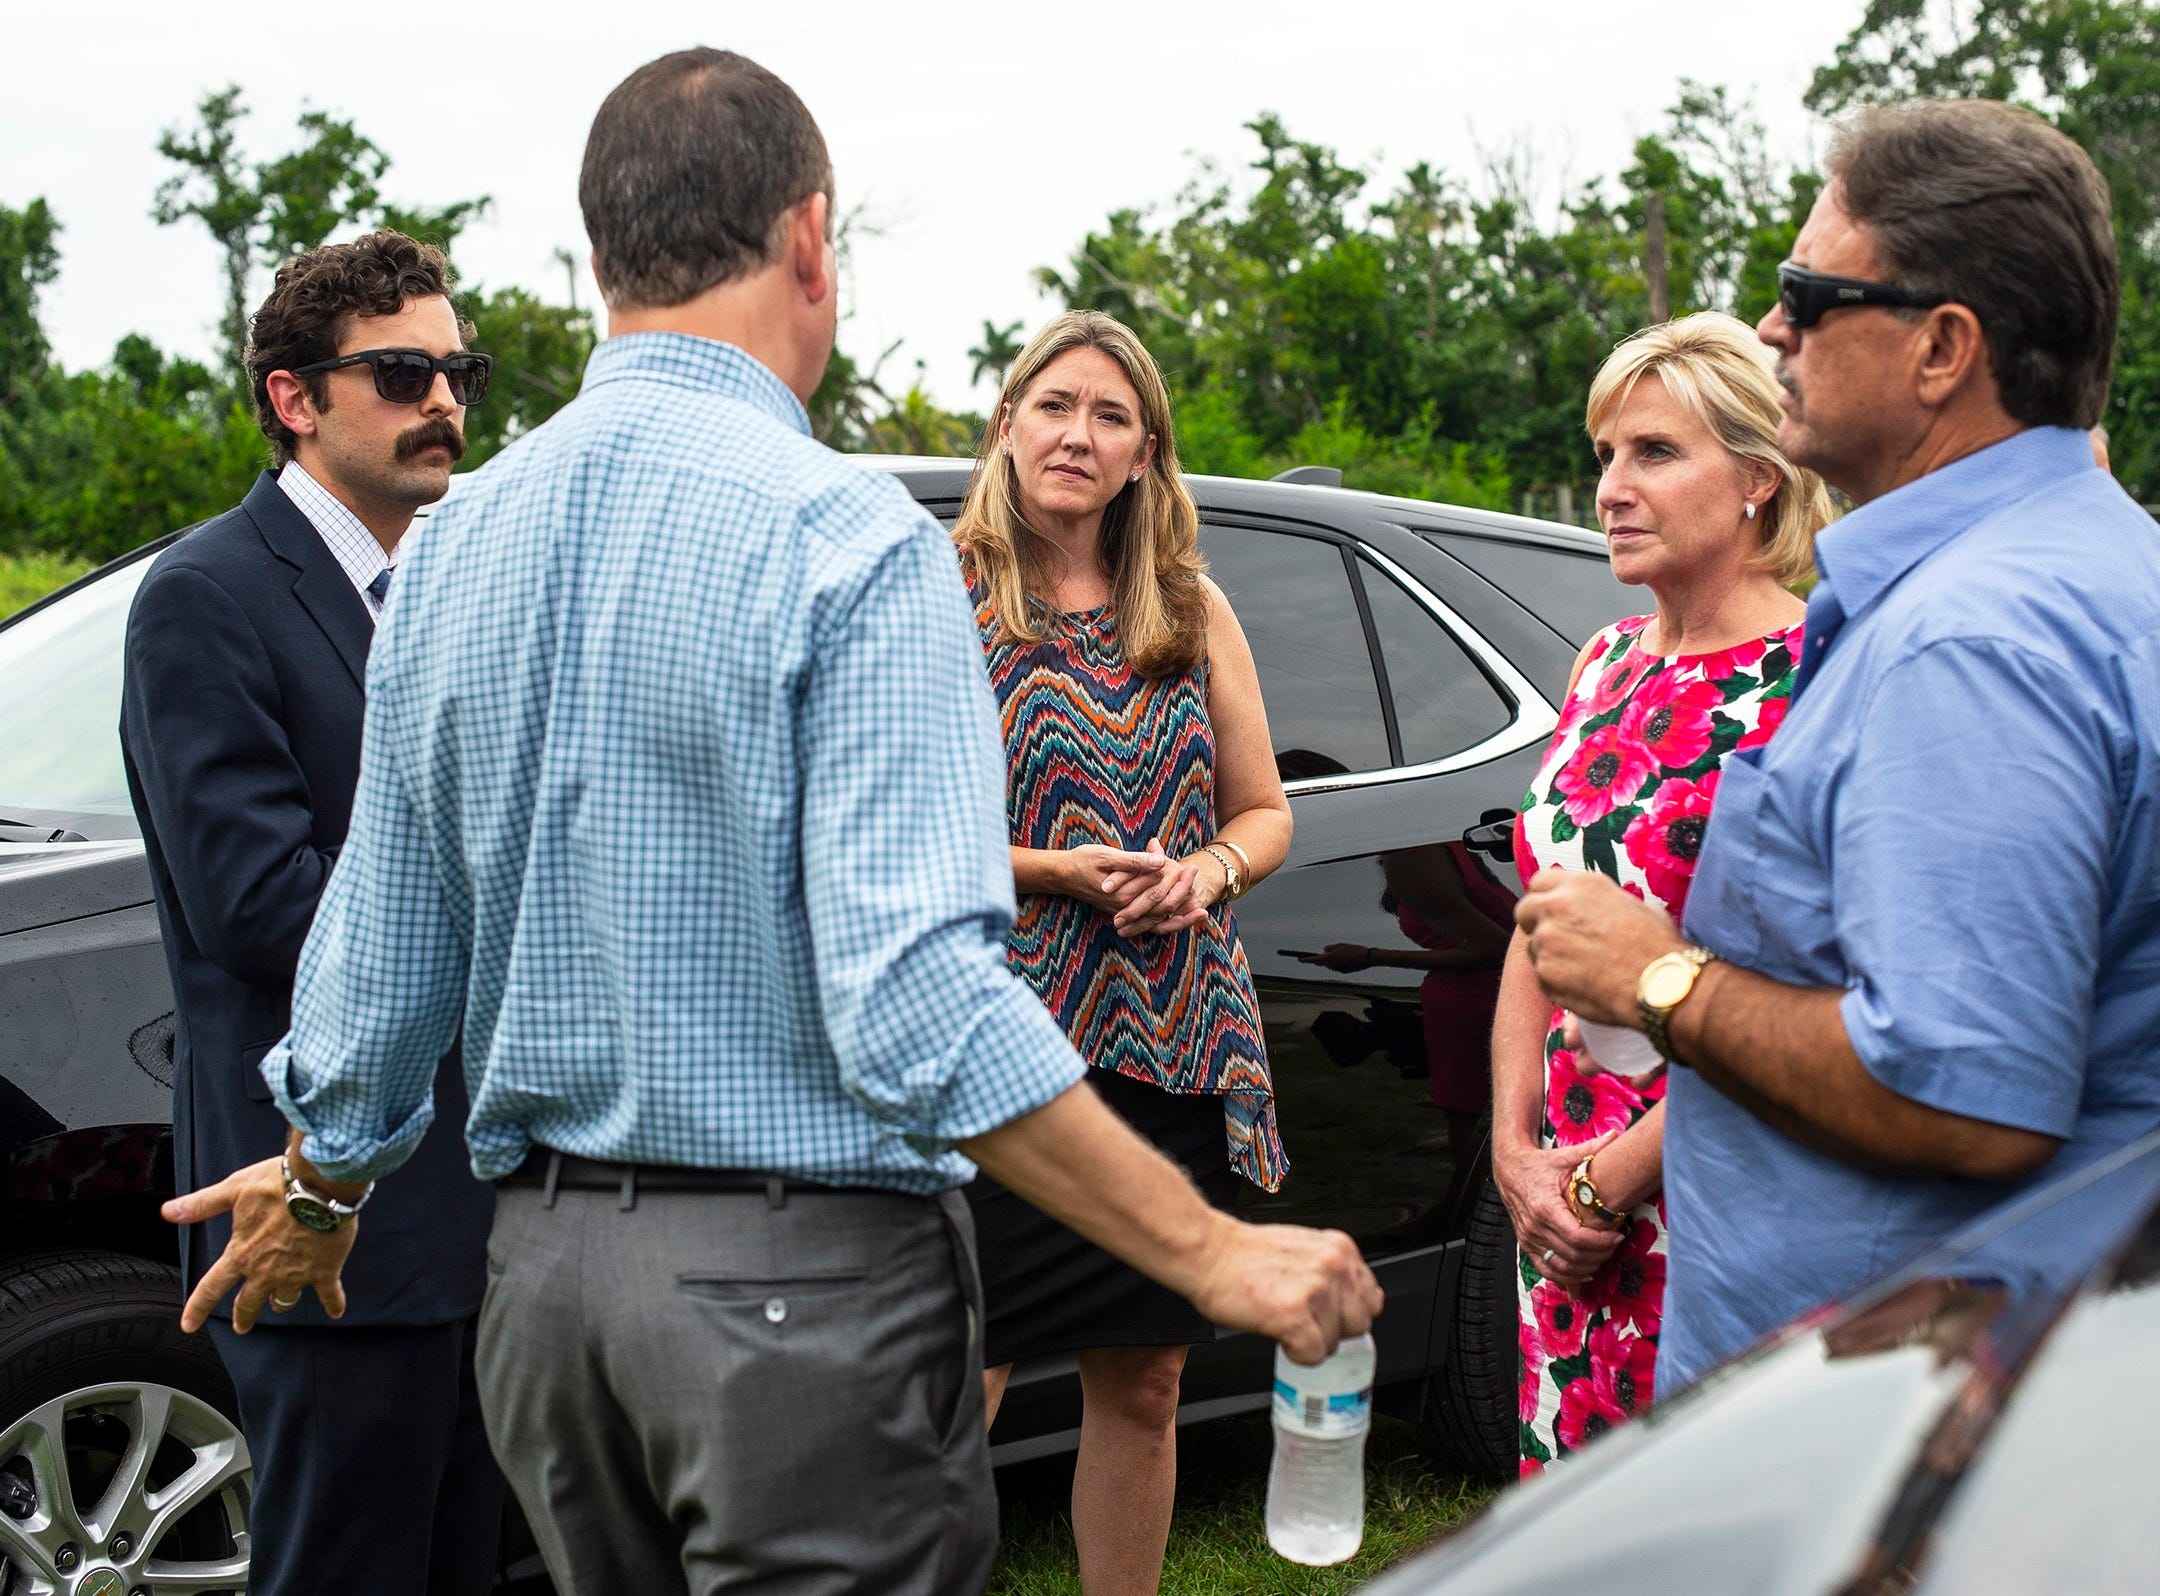 Elected officials take a small tour during a press conference in Everglades City, Fla. on Monday, September 10, 2018. Elected officials took a tour of Everglades City, one of the areas hardest hit by Hurricane Irma, and discuseds the continued federal role in disaster recovery one year after Hurricane Irma landed in Florida.